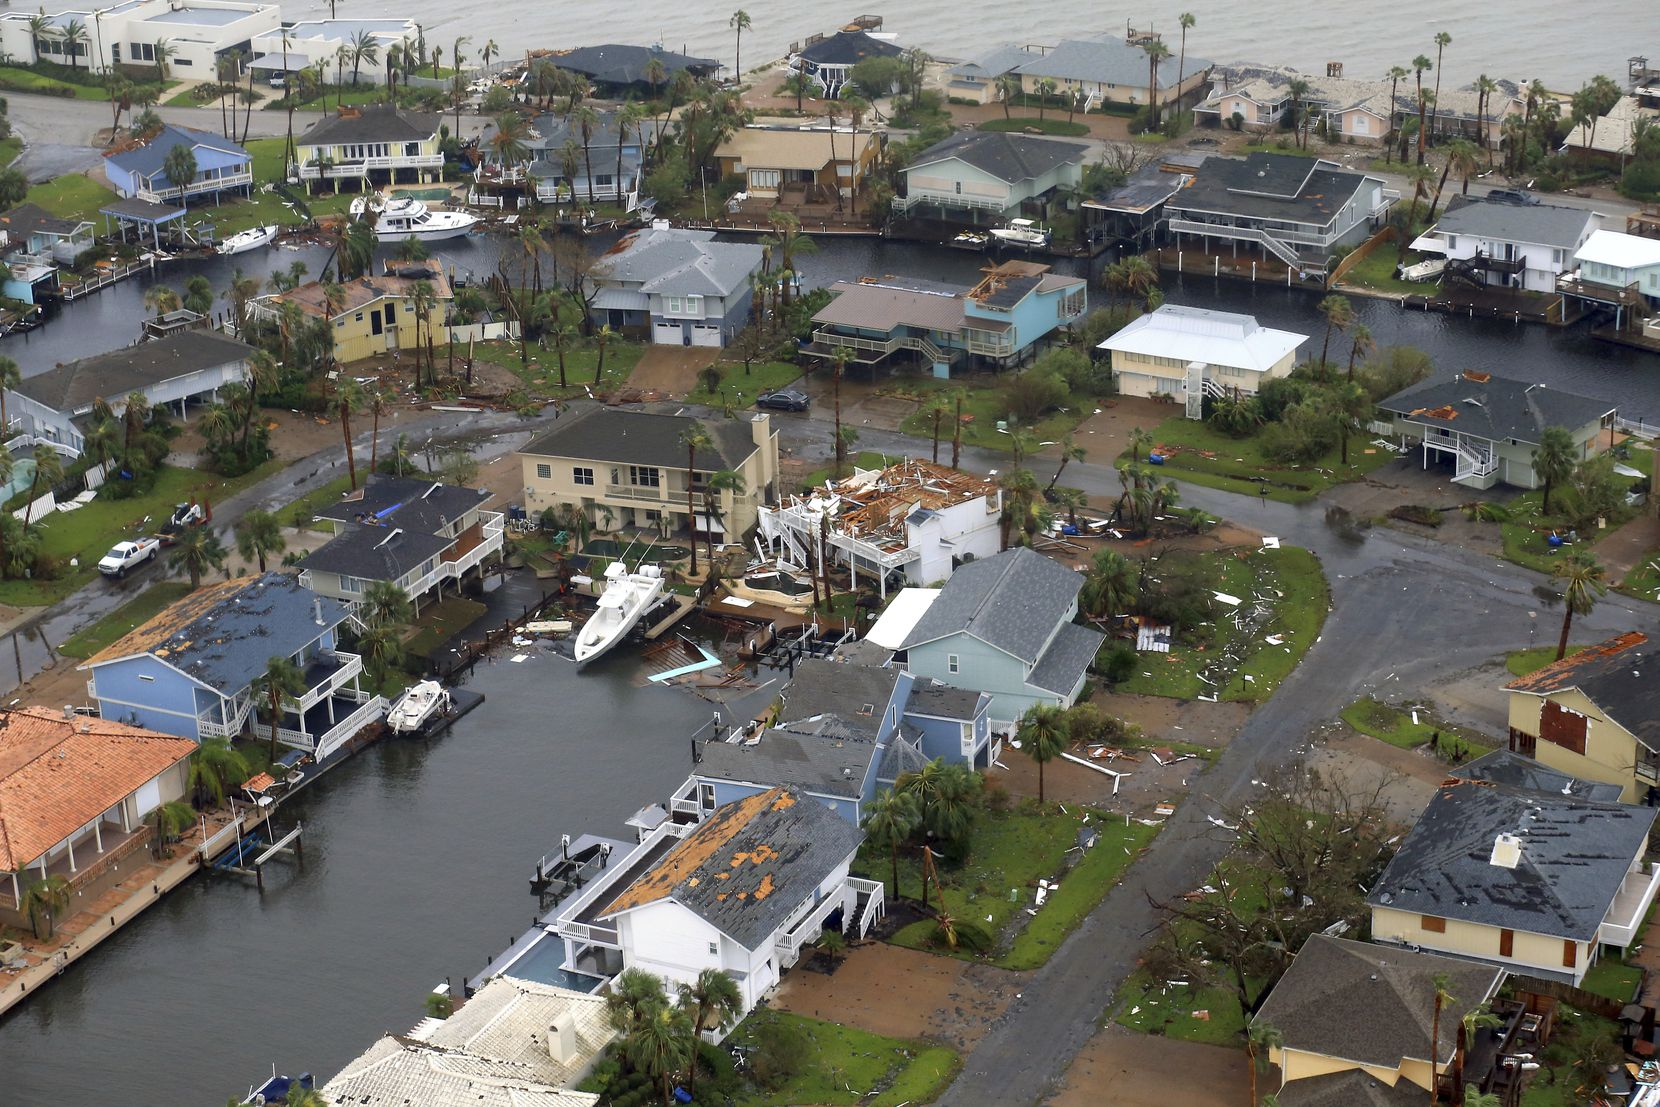 This aerial photo shows a view of damage in the wake of Hurricane Harvey, Monday, Aug. 28, 2017, in Corpus Christi, Texas. Harvey hit the coast as a Category 4 hurricane. (Gabe Hernandez/Corpus Christi Caller-Times via AP)